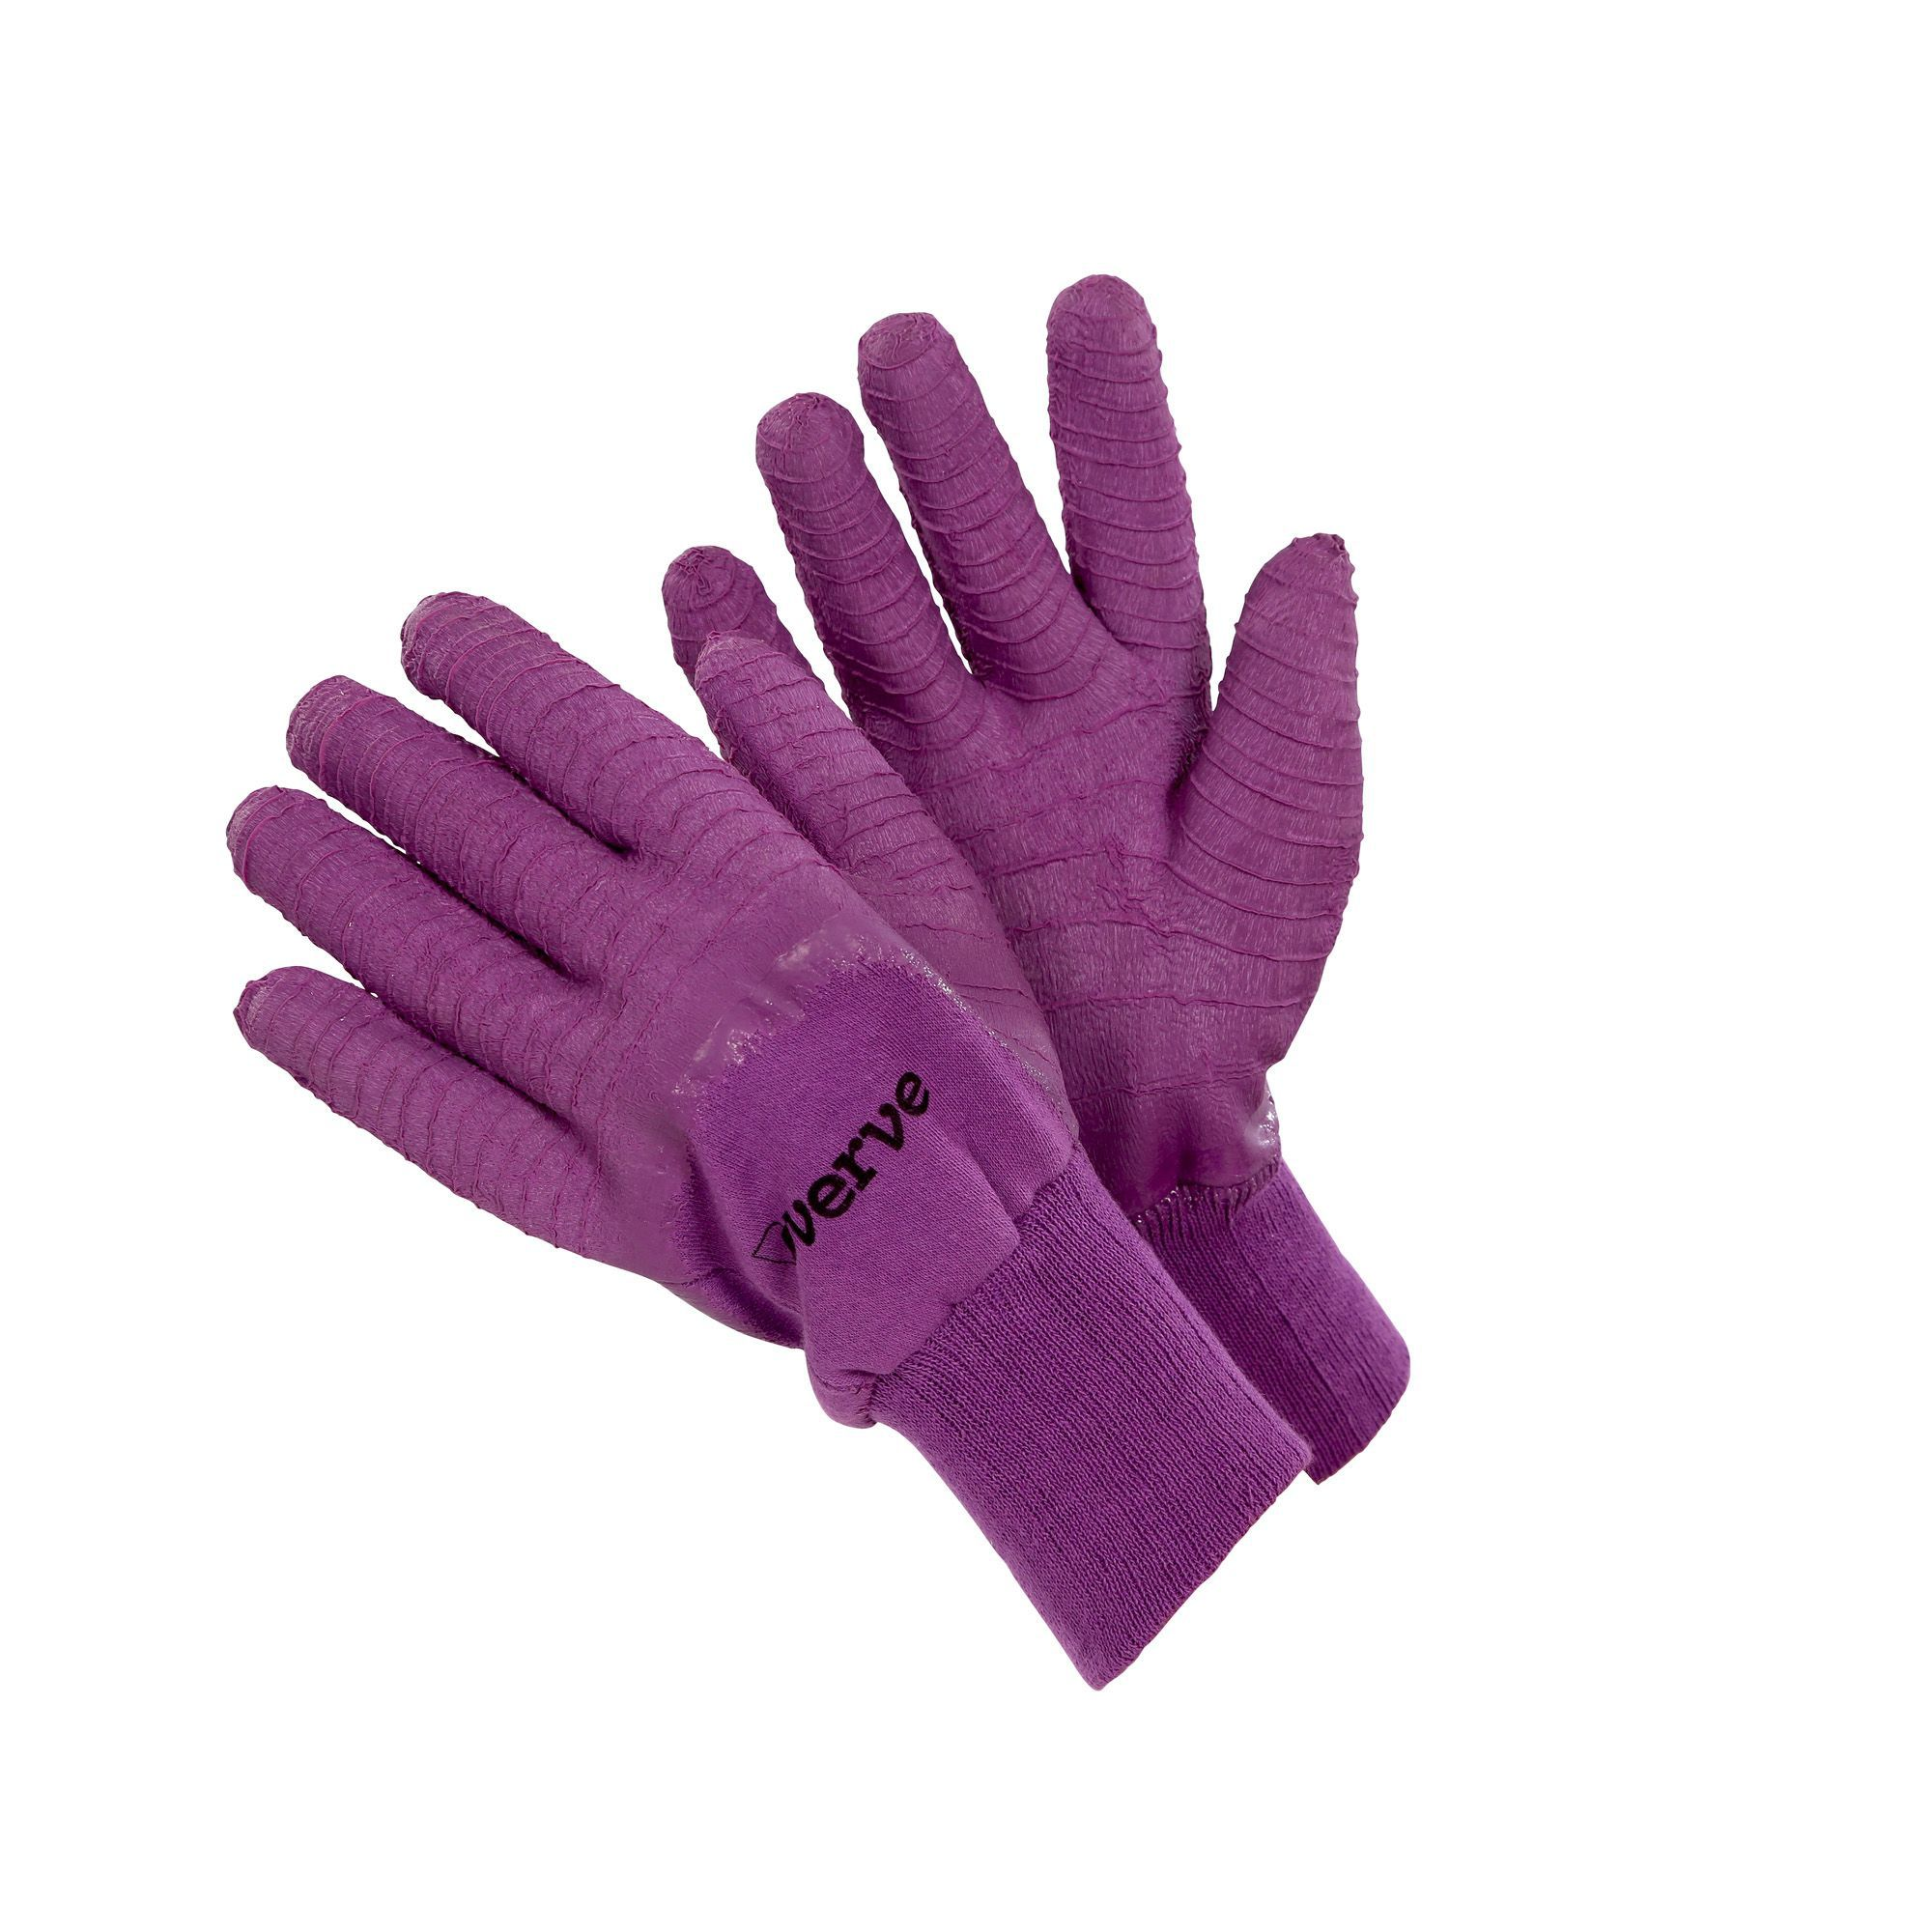 Verve Latex Polycotton Blend Ladies All Purpose Gardening Gloves